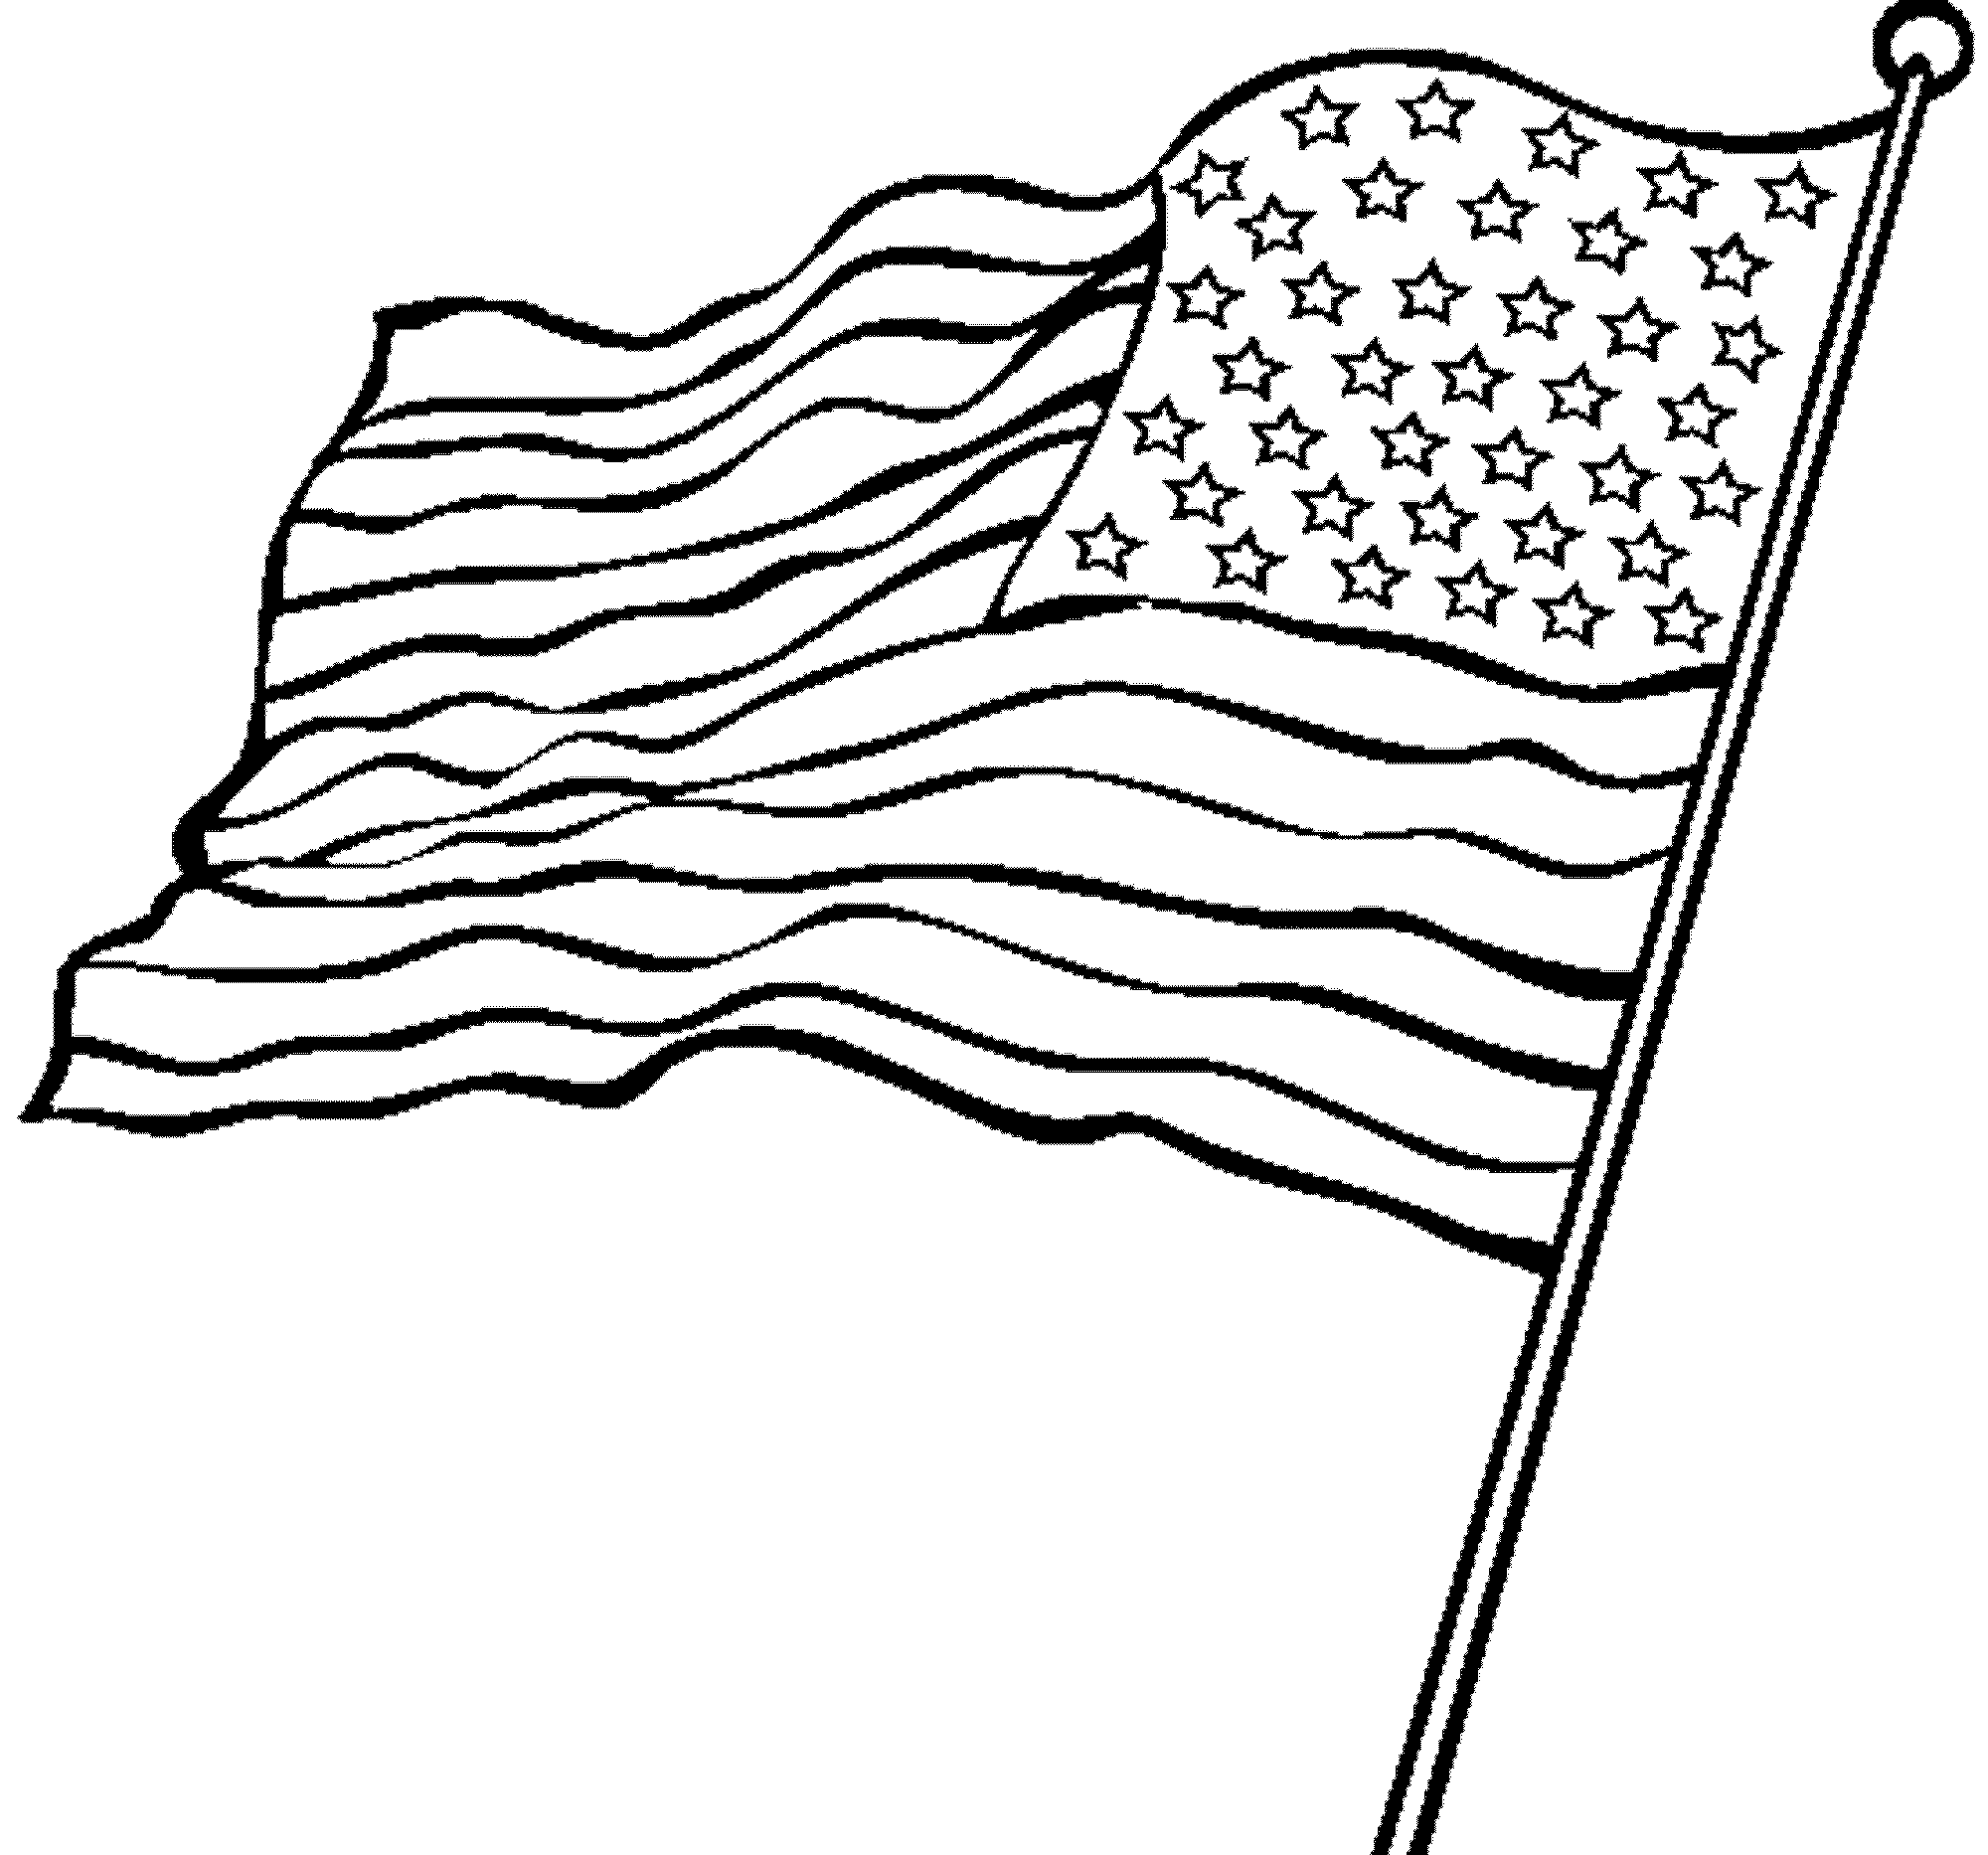 the american flag coloring page original american flag coloring page coloring home the page coloring american flag